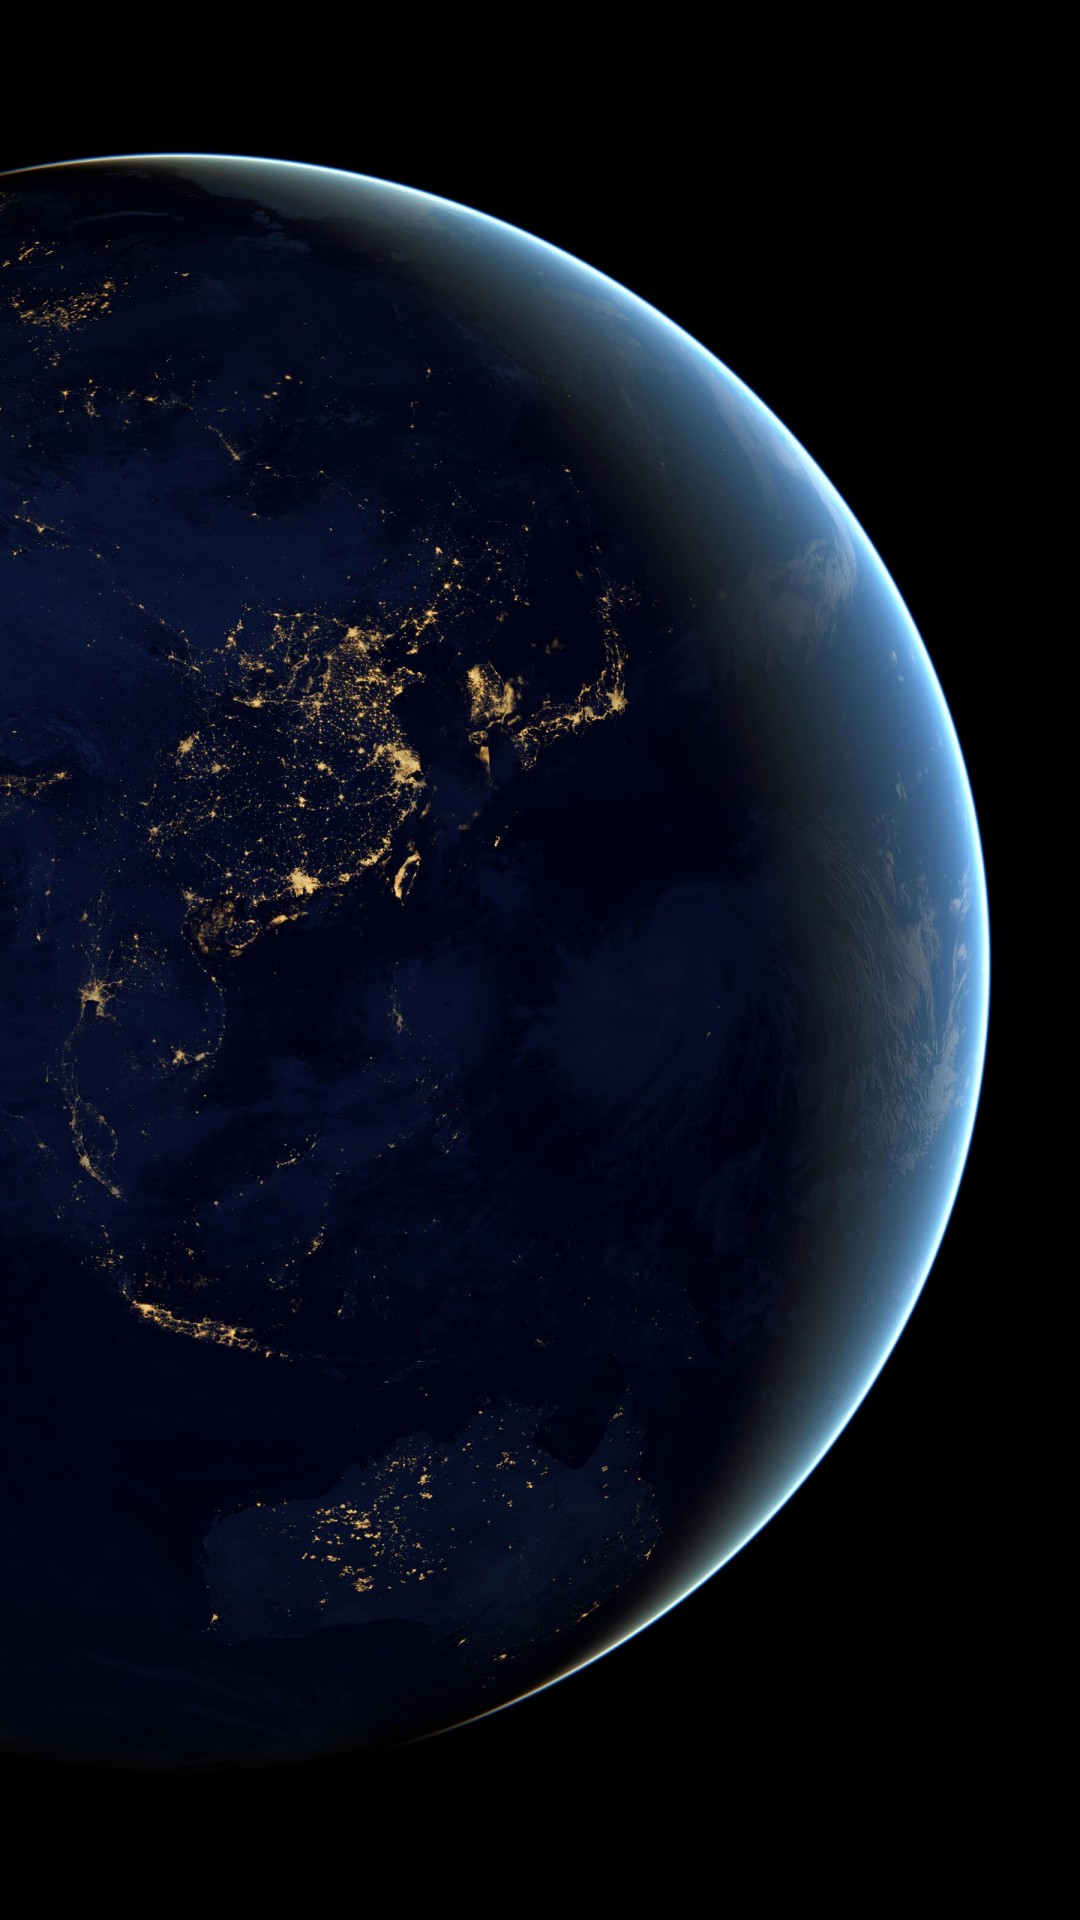 Earth At Night Seen From Space Wallpaper for SONY Xperia Z3